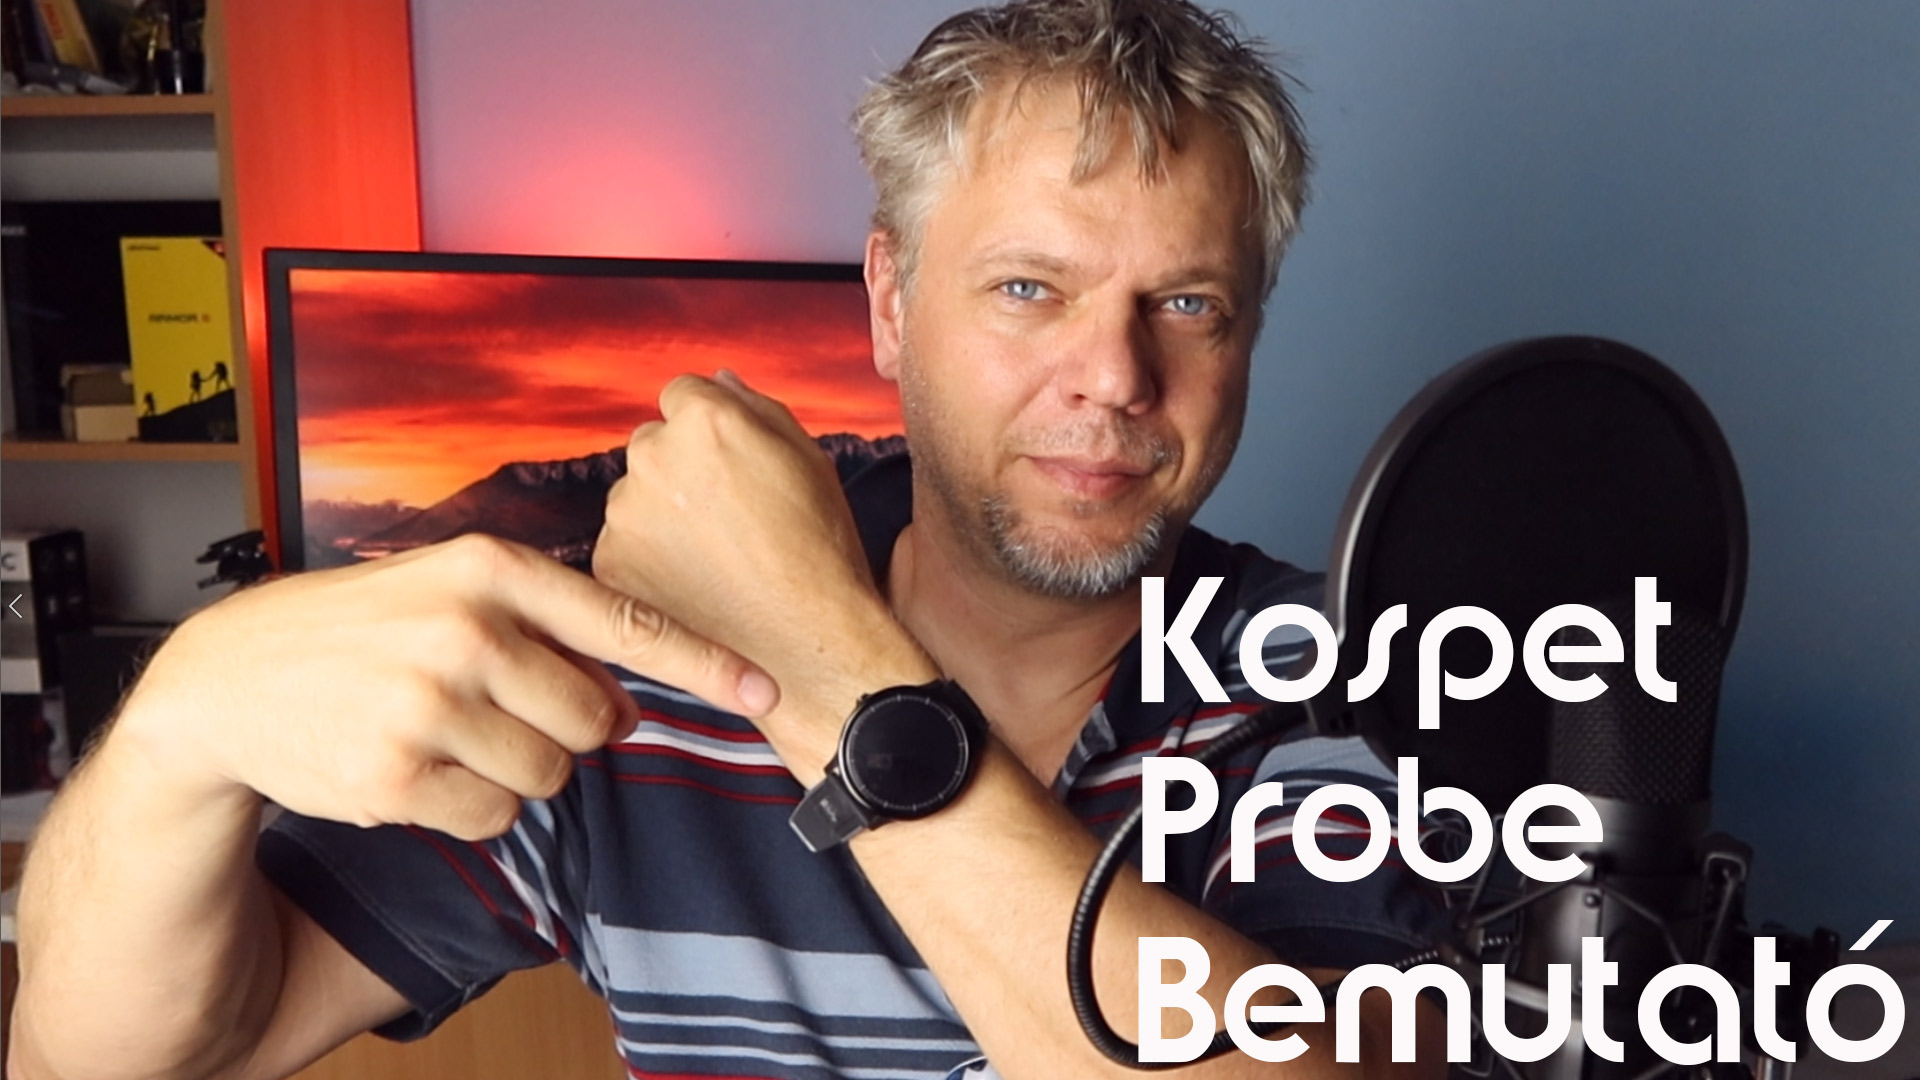 kospet_probe_bemutato_cover.jpg